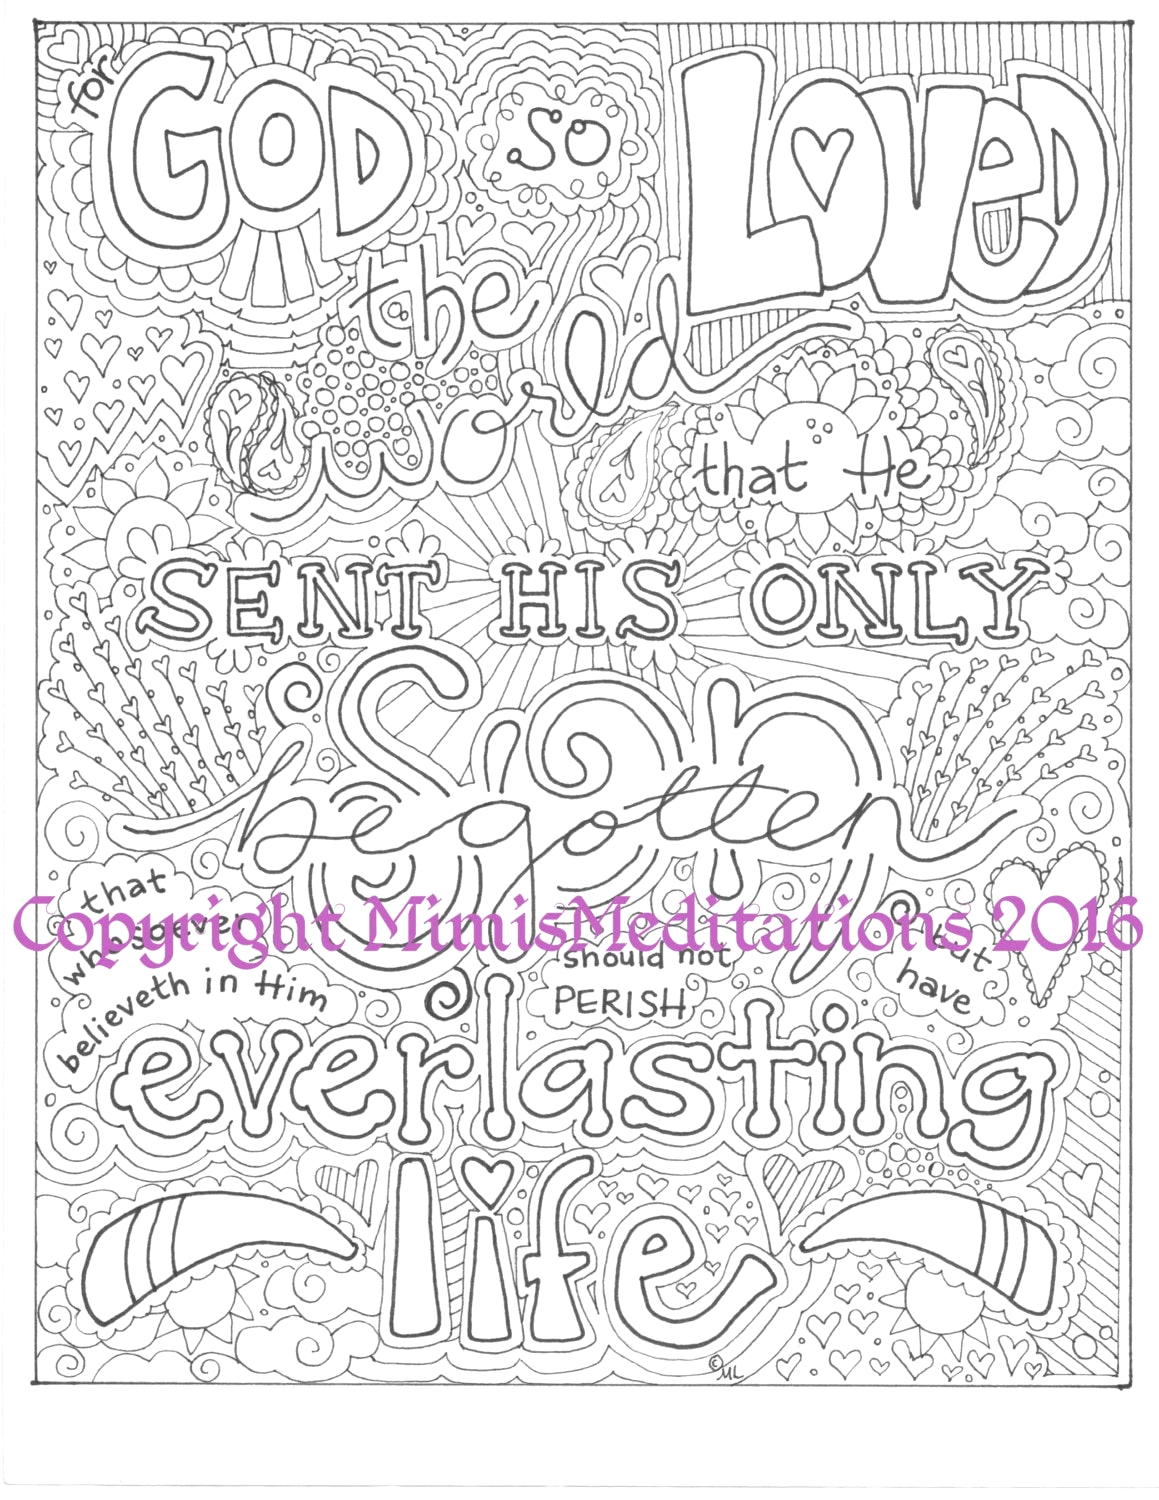 coloring page for god so loved the world